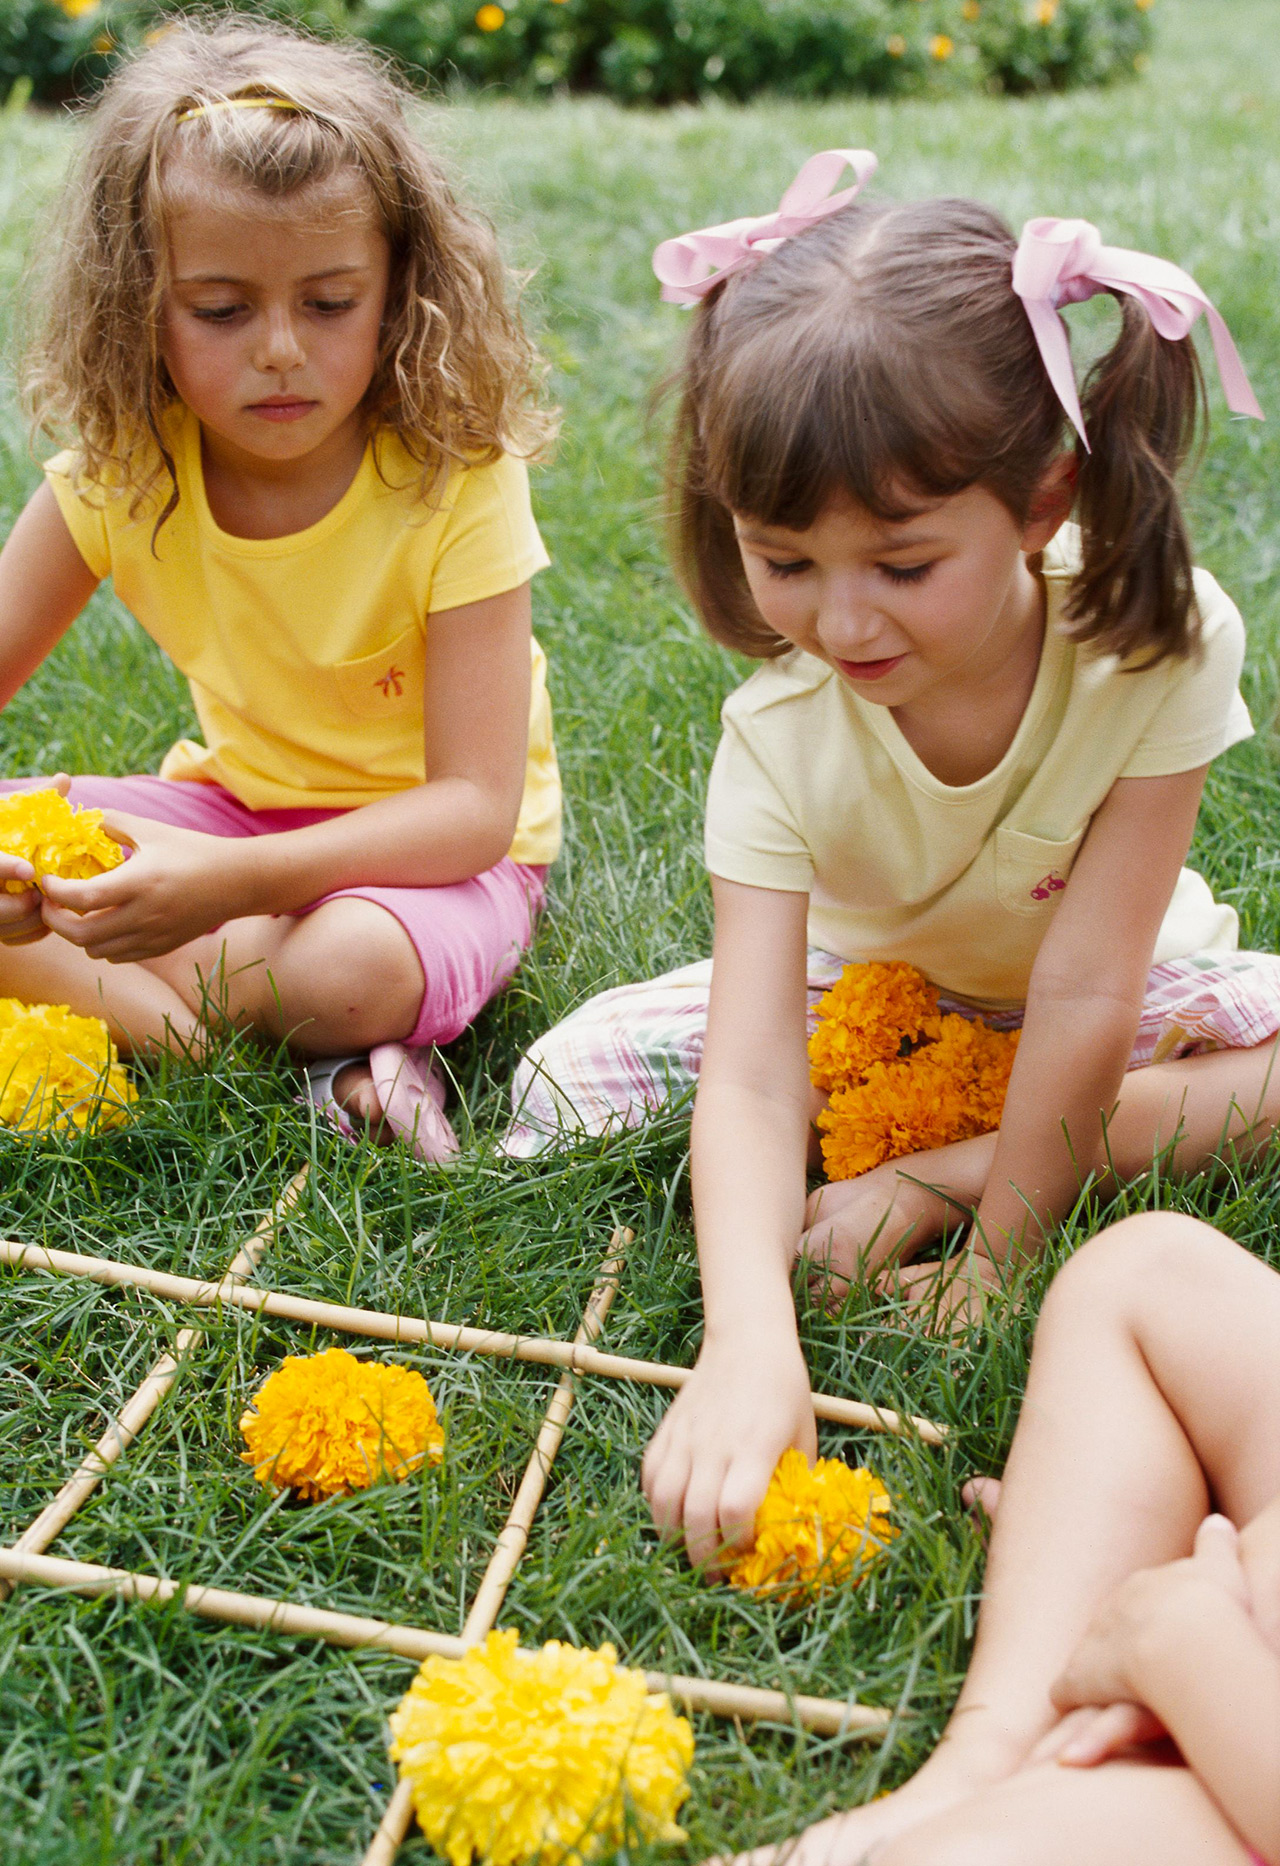 girls playing tic tac toe with flowers